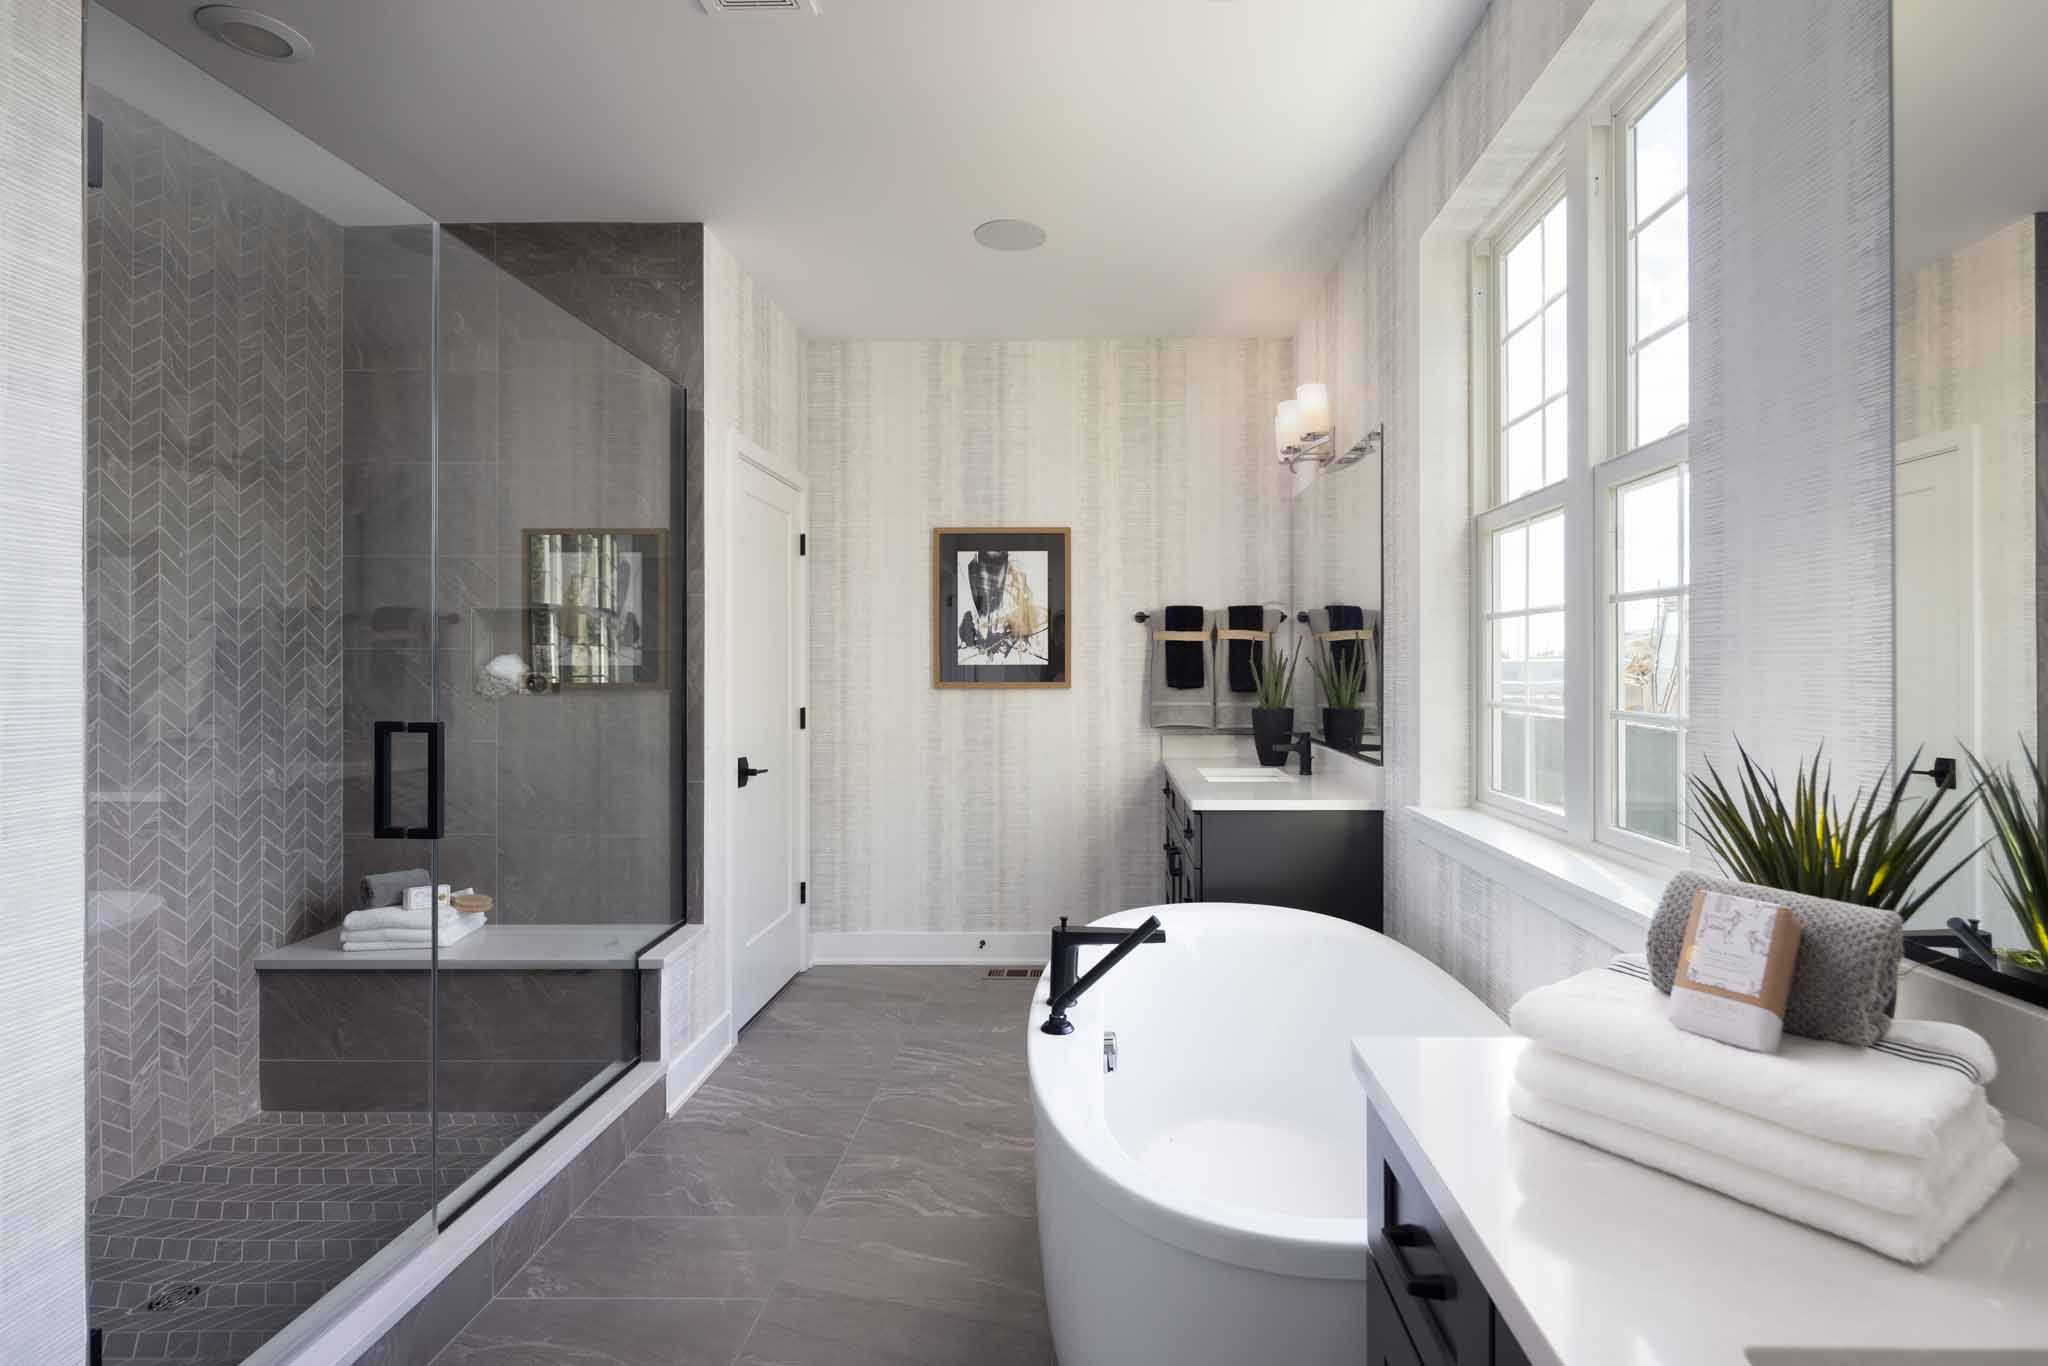 Bathroom featured in The Burgundy By Lexington Homes in Chicago, IL